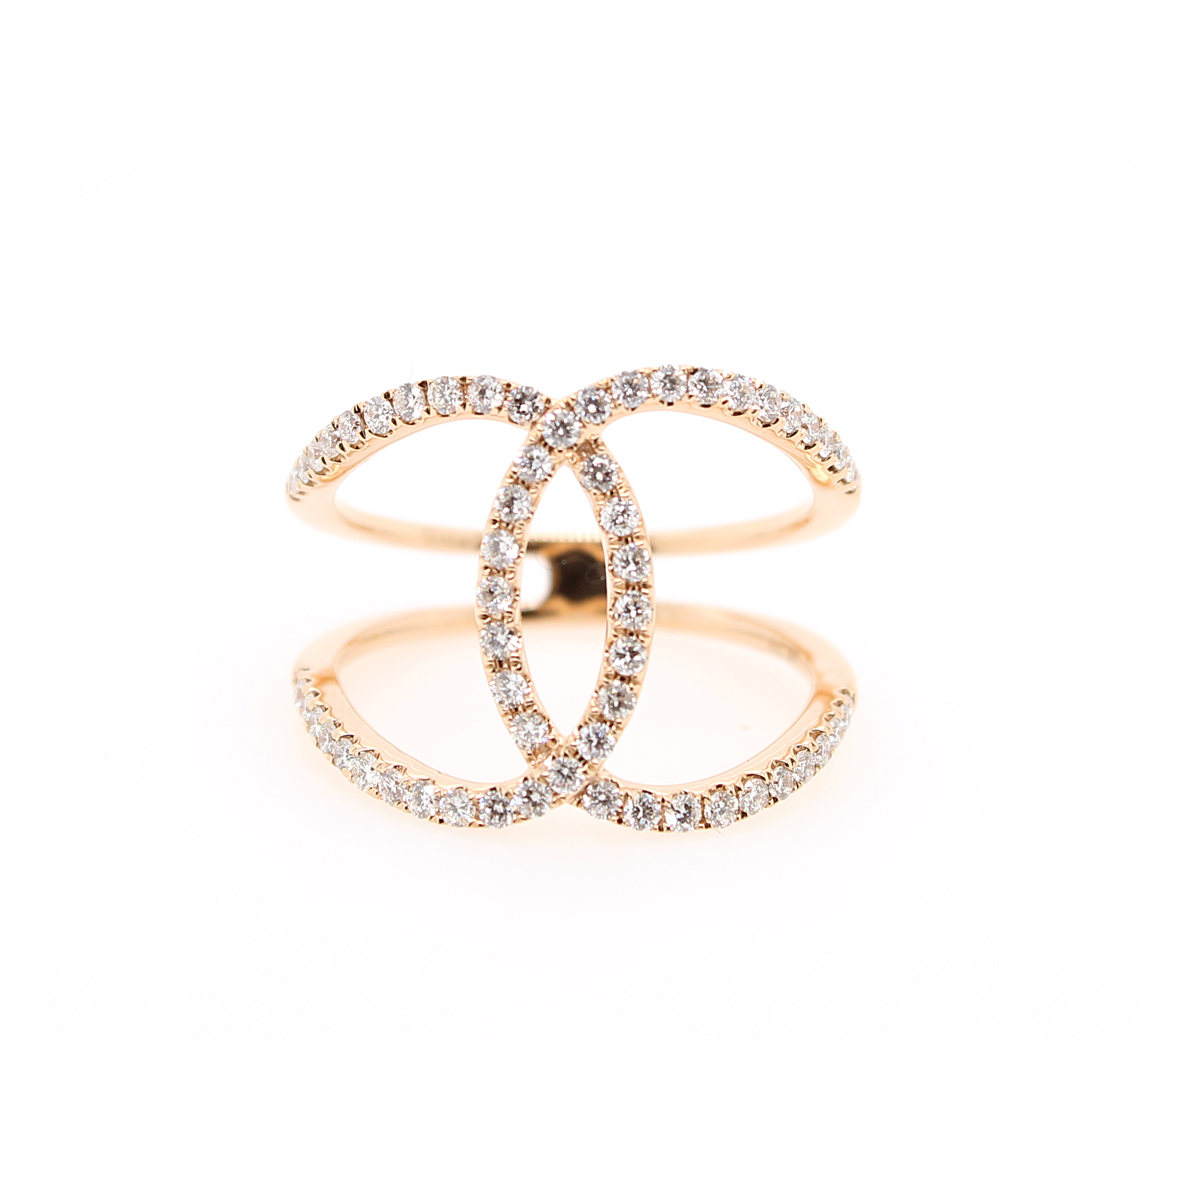 18 Karat Rose Gold Interlocking Diamond Ring